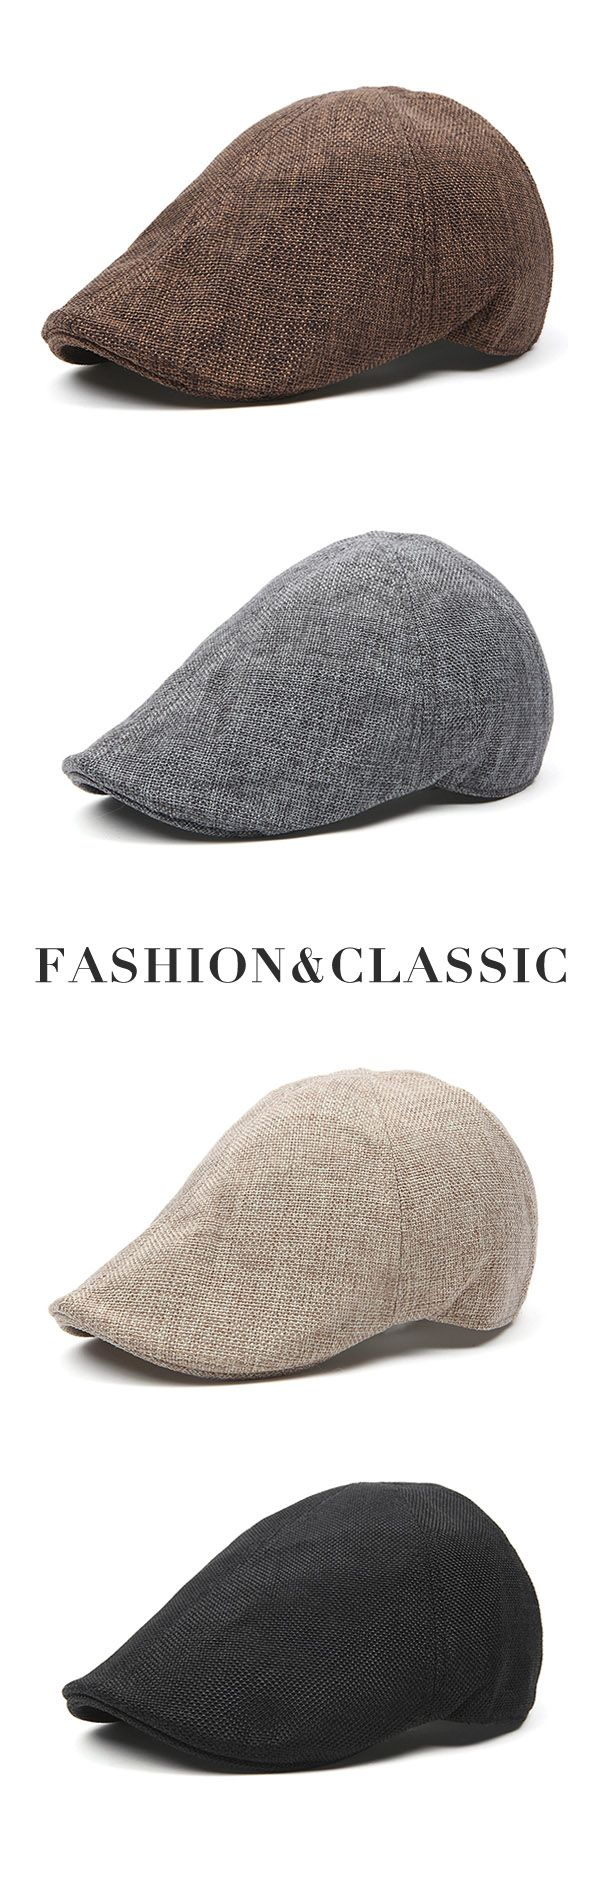 US$7.38+Free shipping. Beret Hat, Newsboy Peaked Caps, Casual, Sunscreen, British Style. Color: Black, Khaki, Coffee, Light Grey, Dark Grey. Shop now~